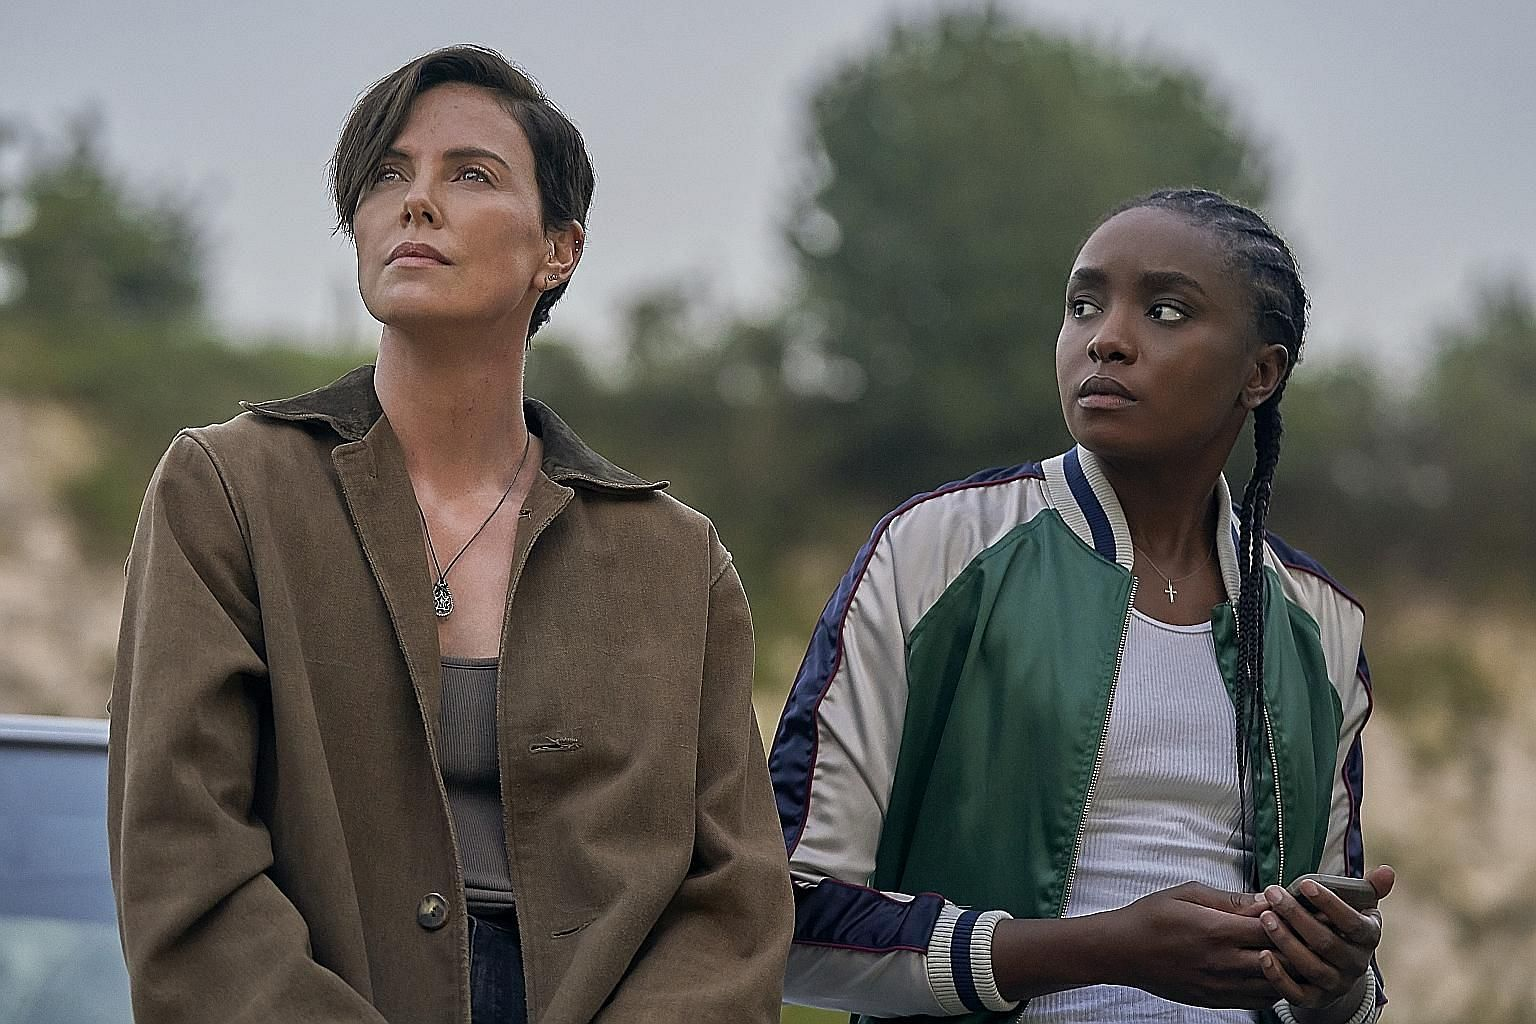 Keira Knightley (left) plays translator and linguist Katherine Gun in the biopic Official Secrets. Charlize Theron (above, left, with Kiki Layne) plays the leader of a secret clan of immortal warriors in The Old Guard.